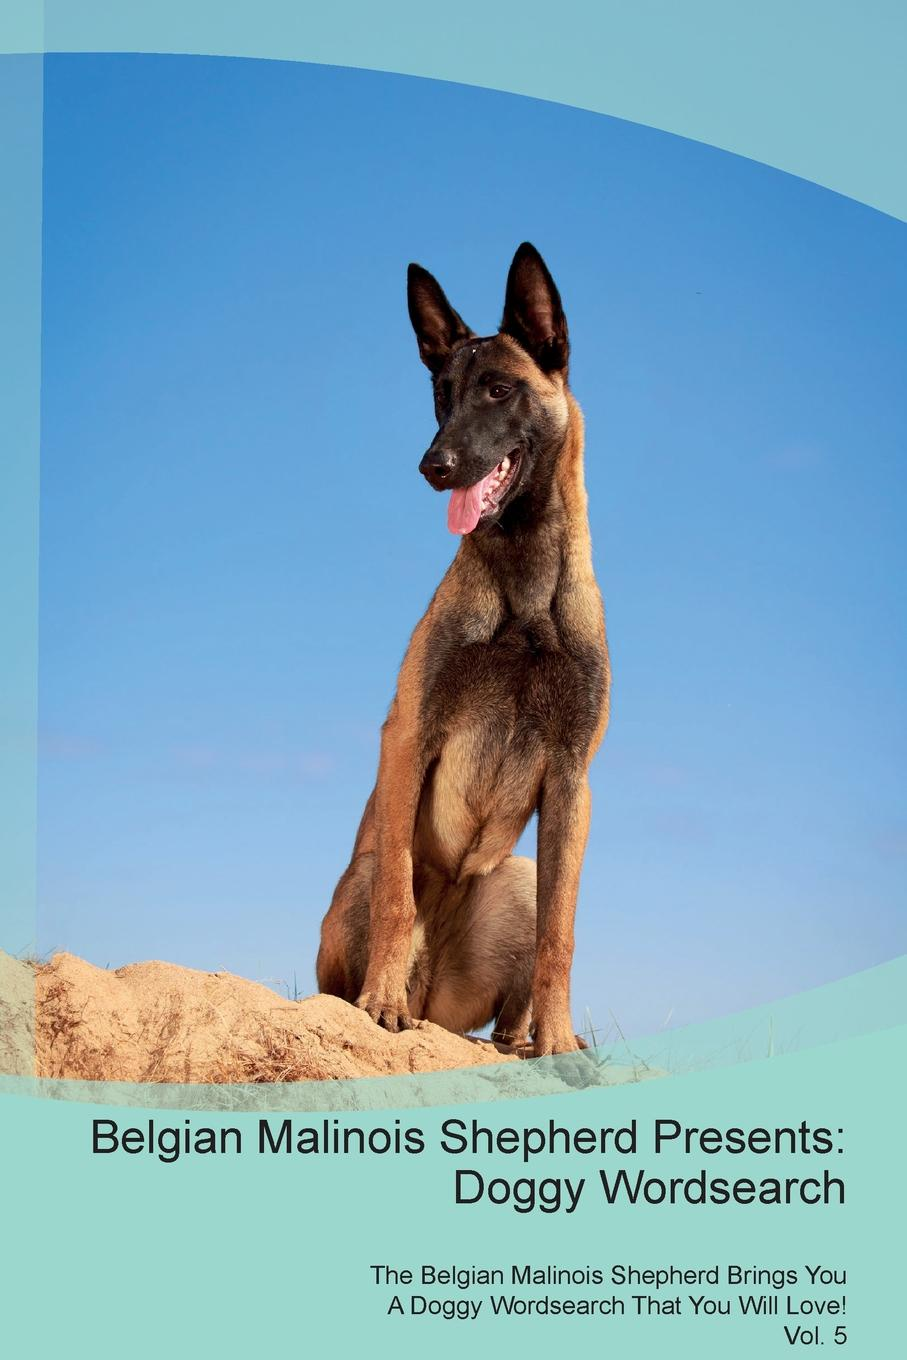 Doggy Puzzles Belgian Malinois Shepherd Presents. Wordsearch The Brings You A That Will Love! Vol. 5